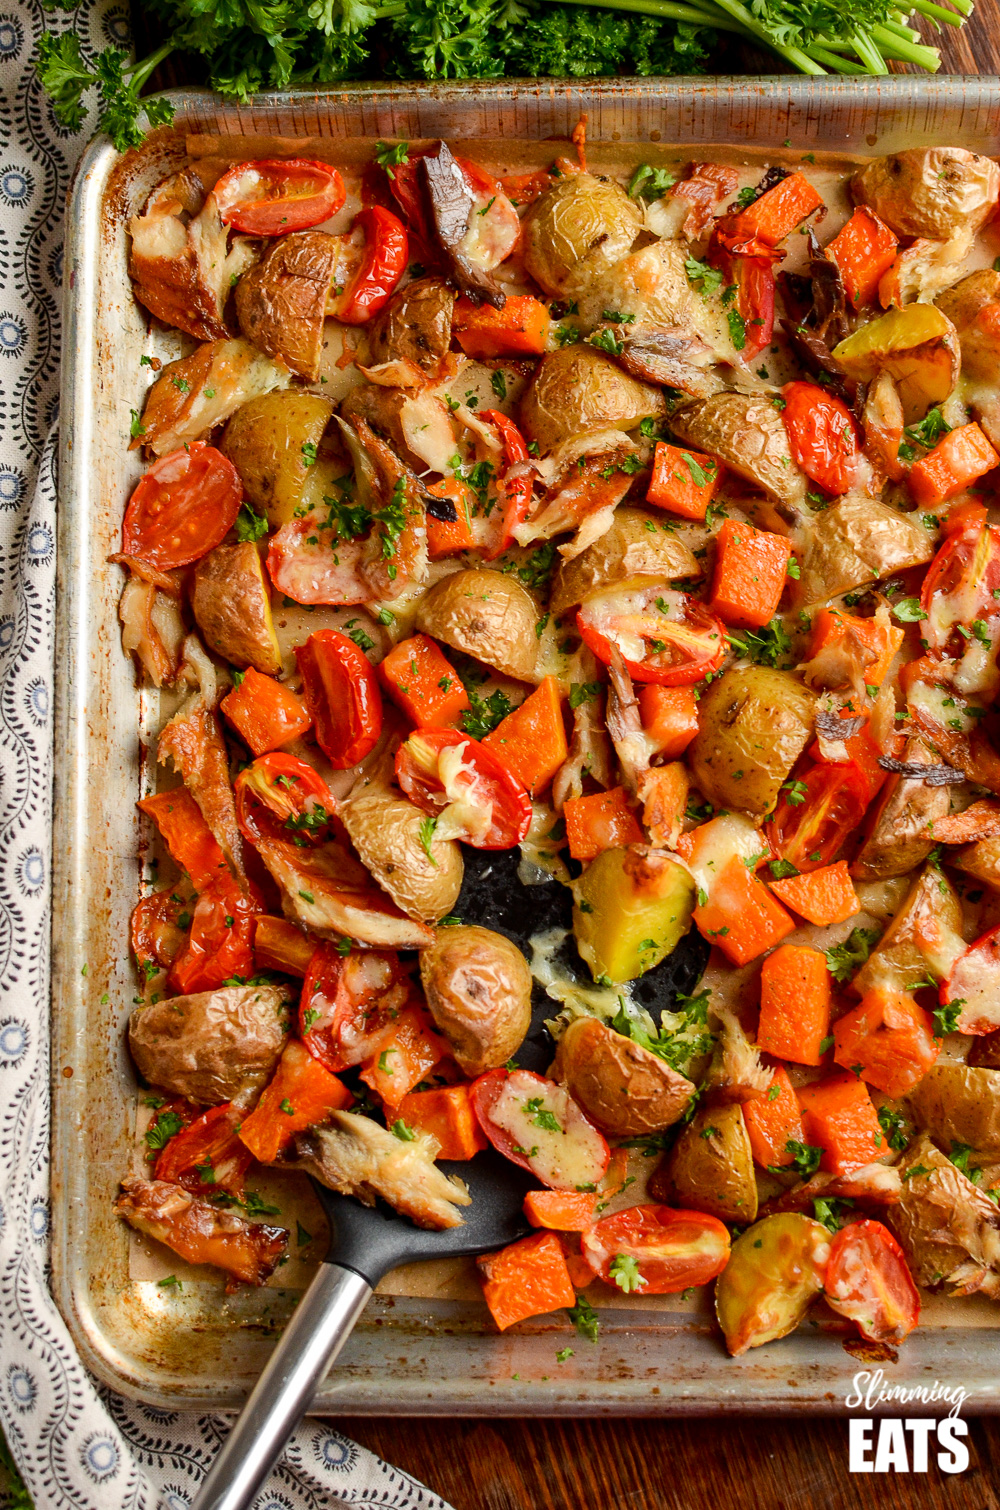 over the top view of smoked mackerel bake on a baking tray with spatula